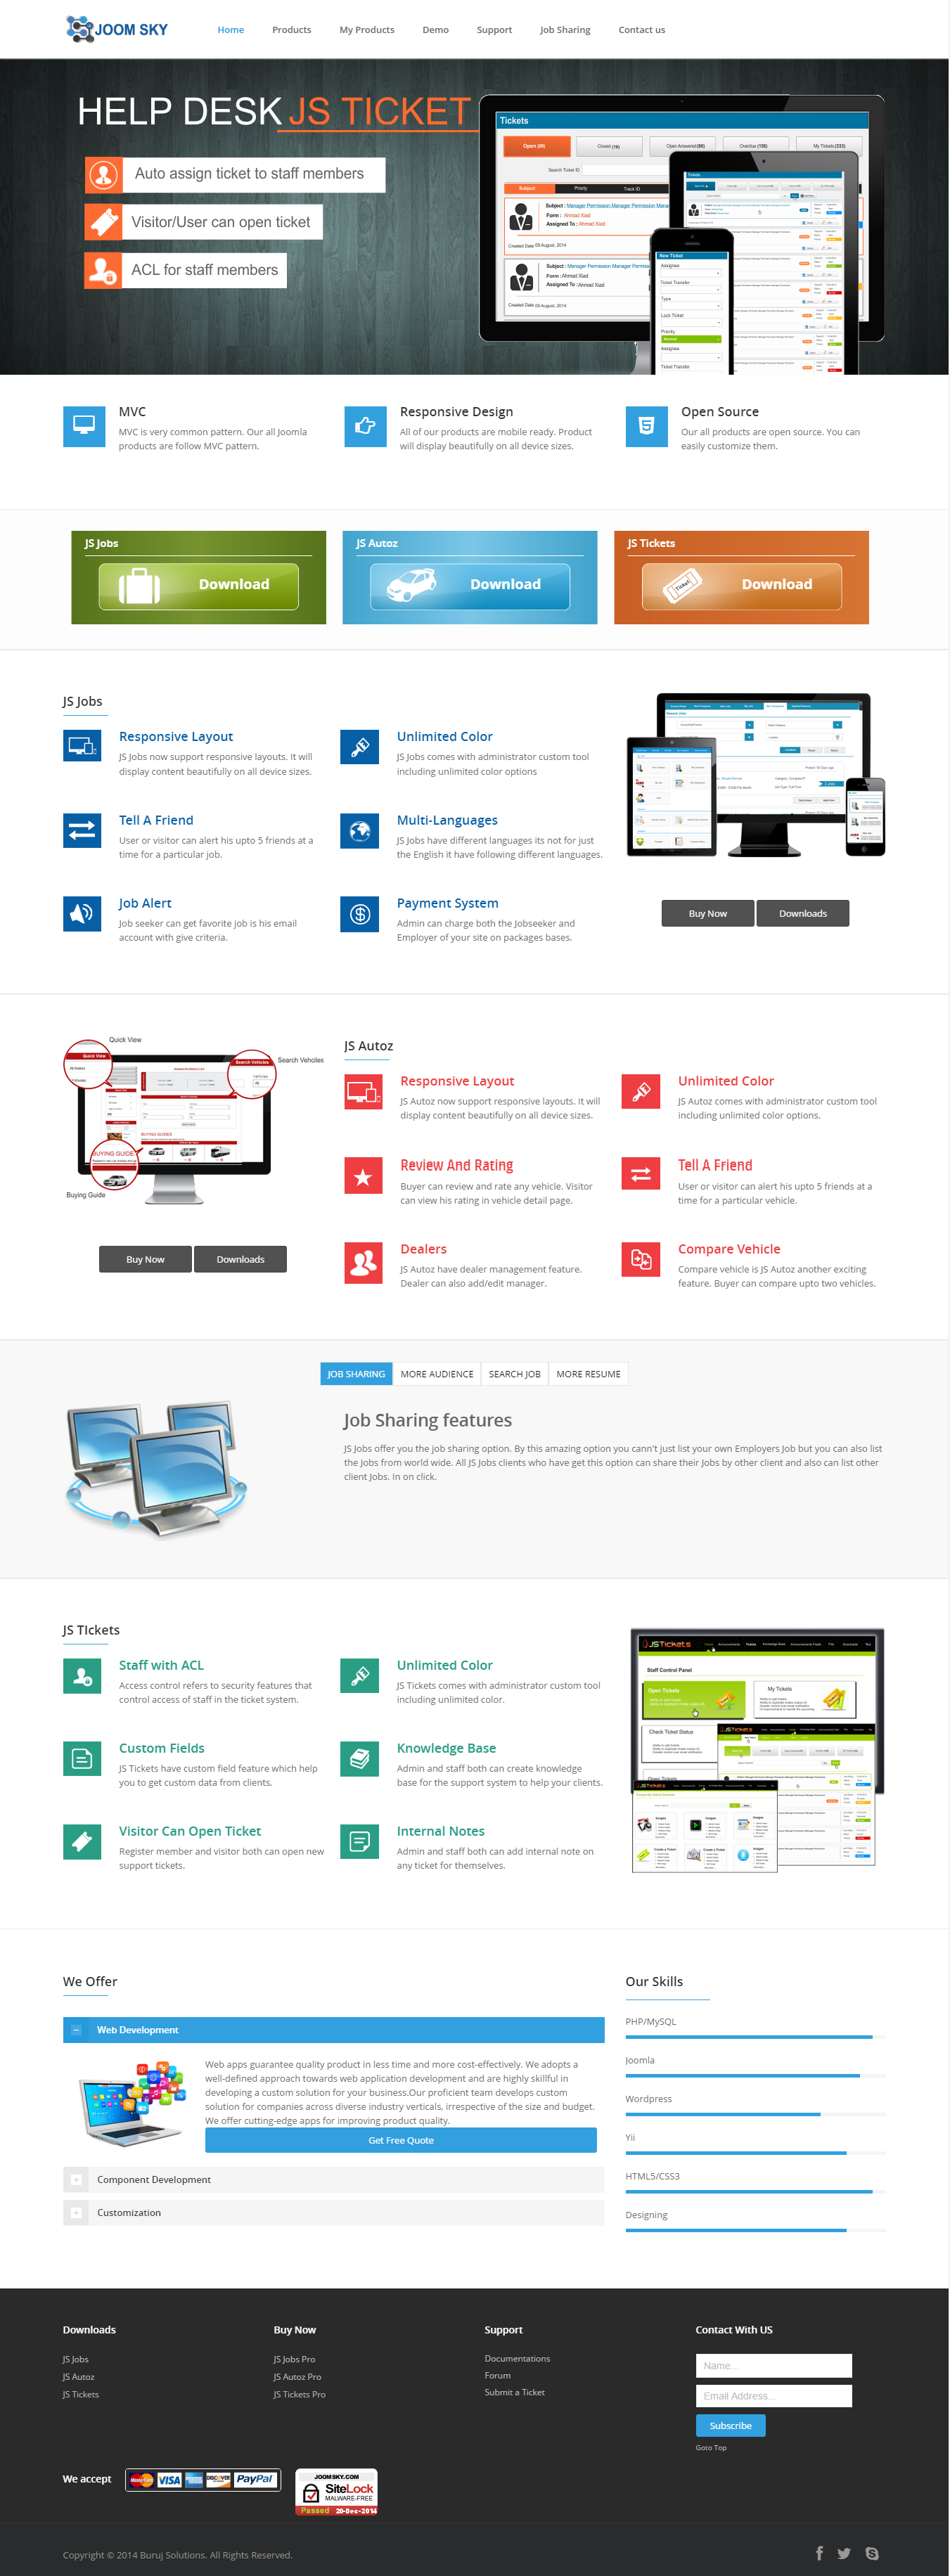 a products web site.